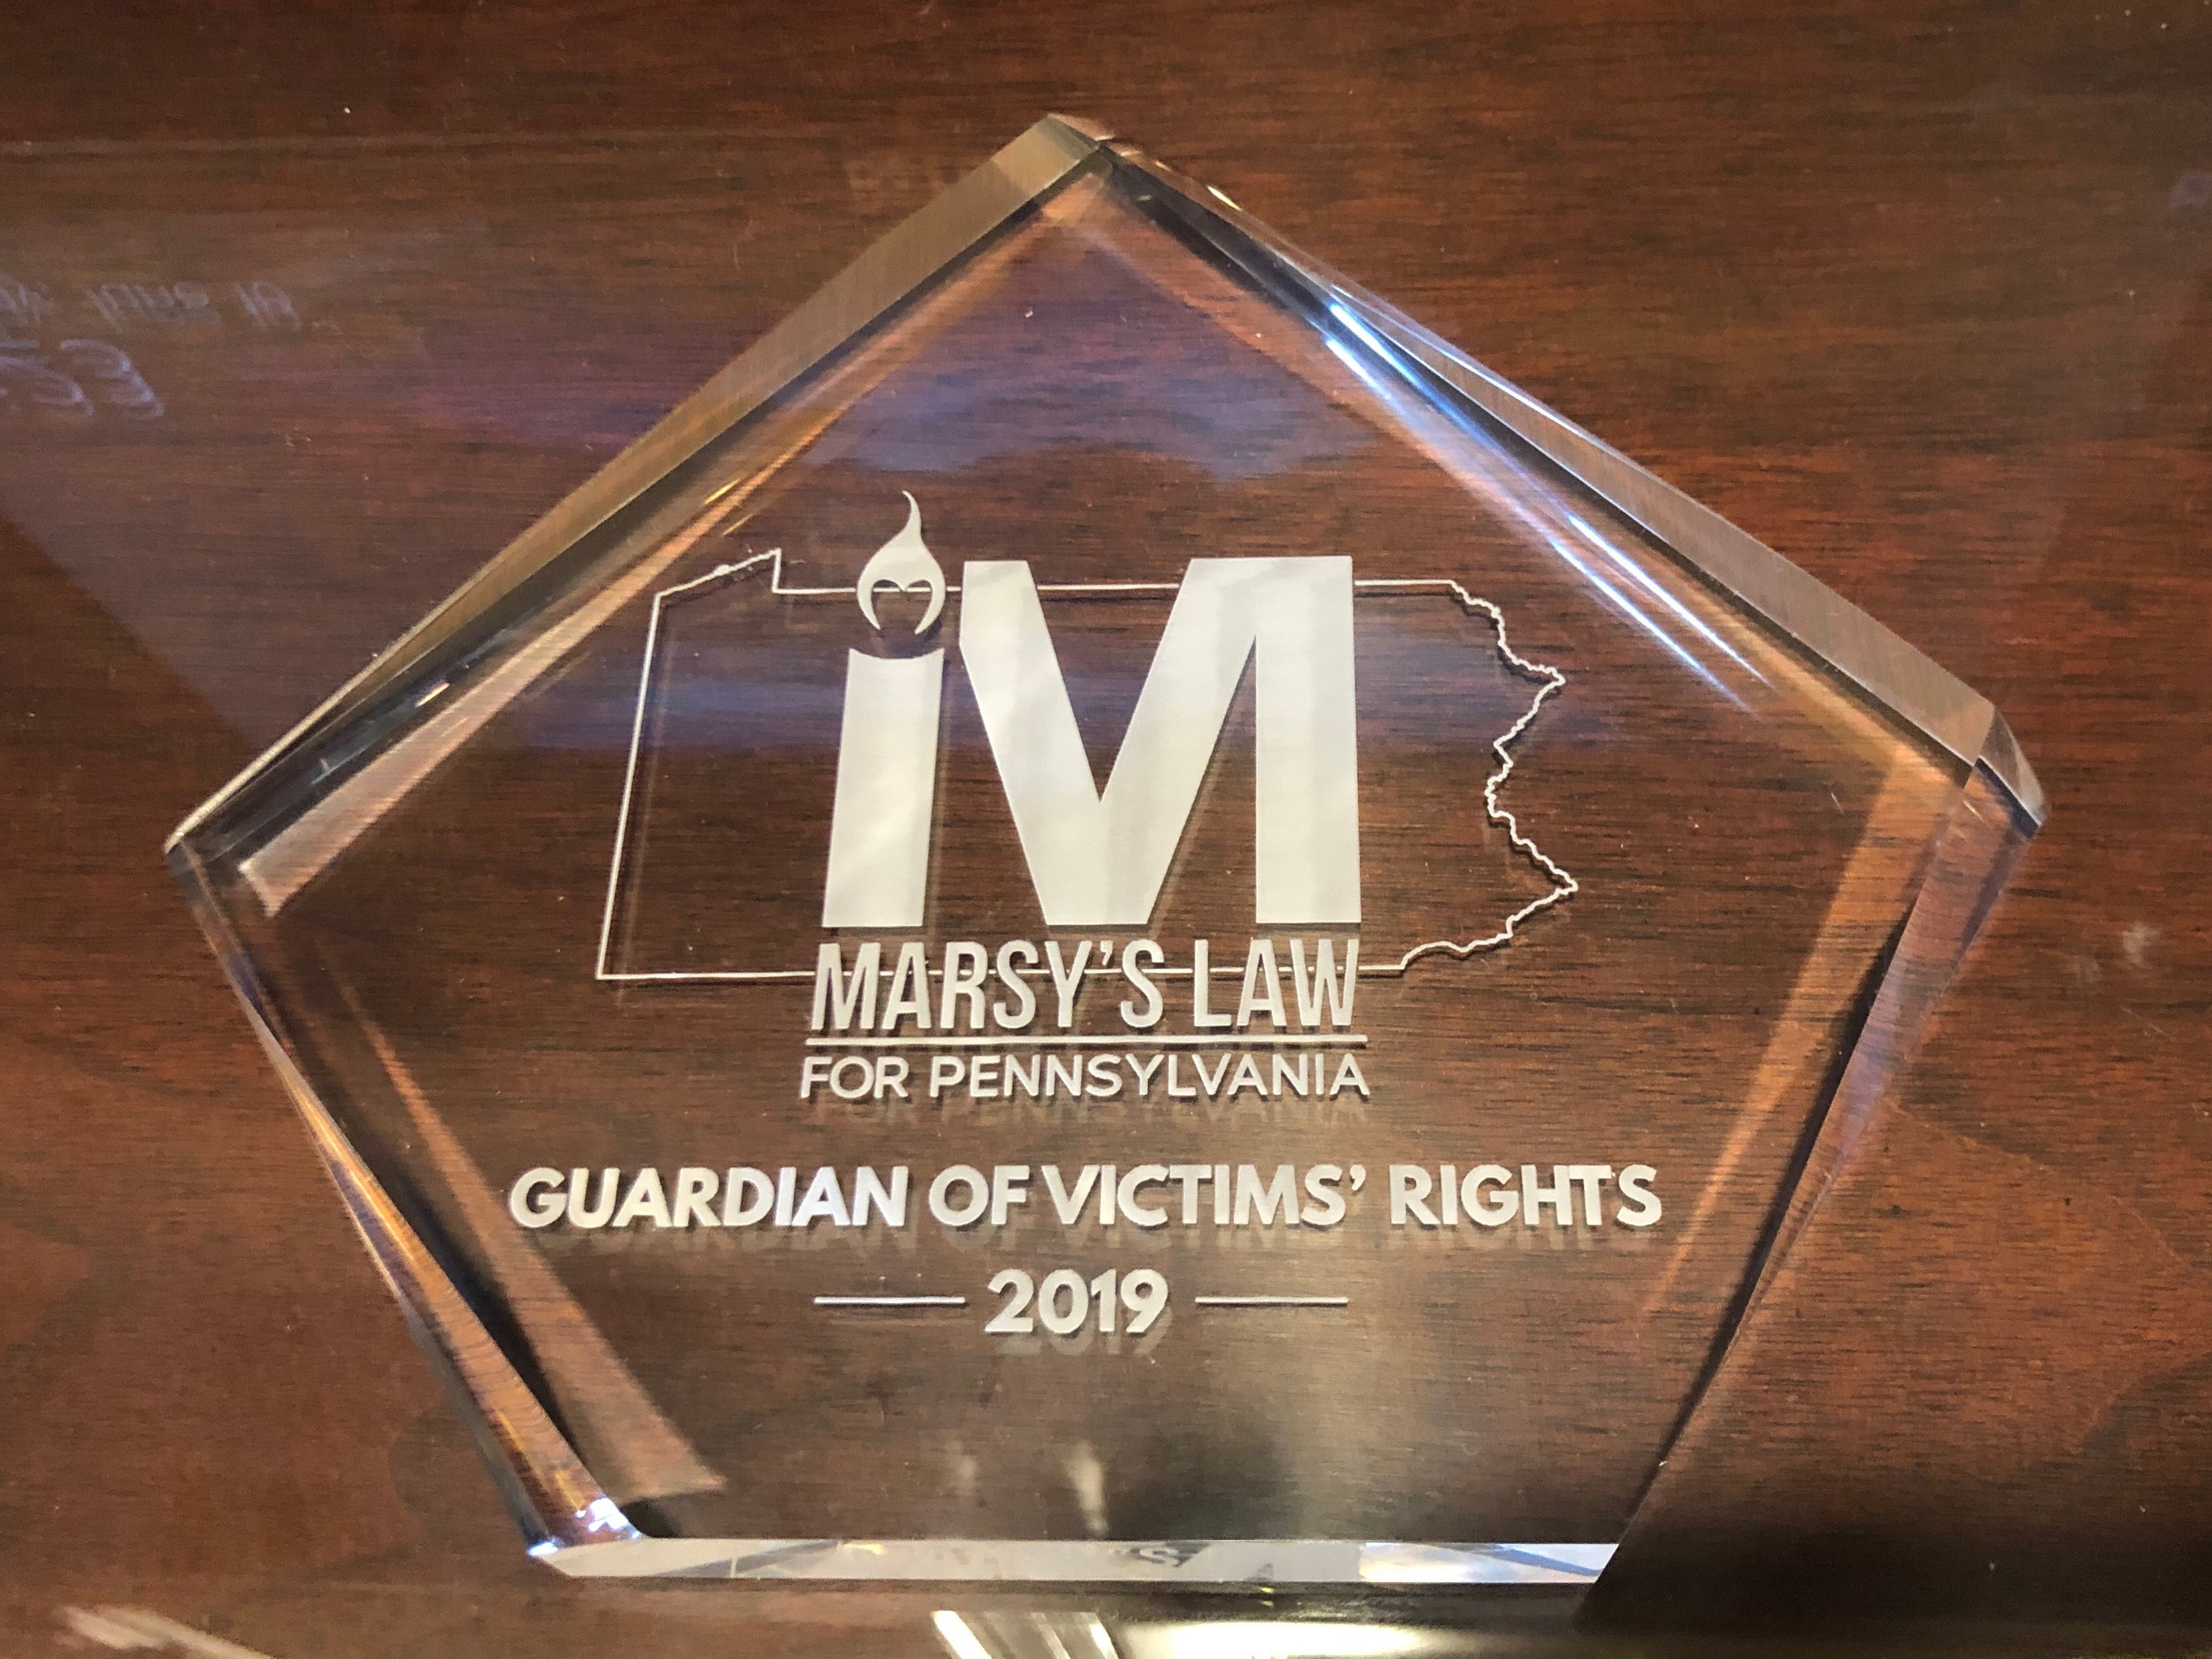 The Guardian of Victims' Rights Award